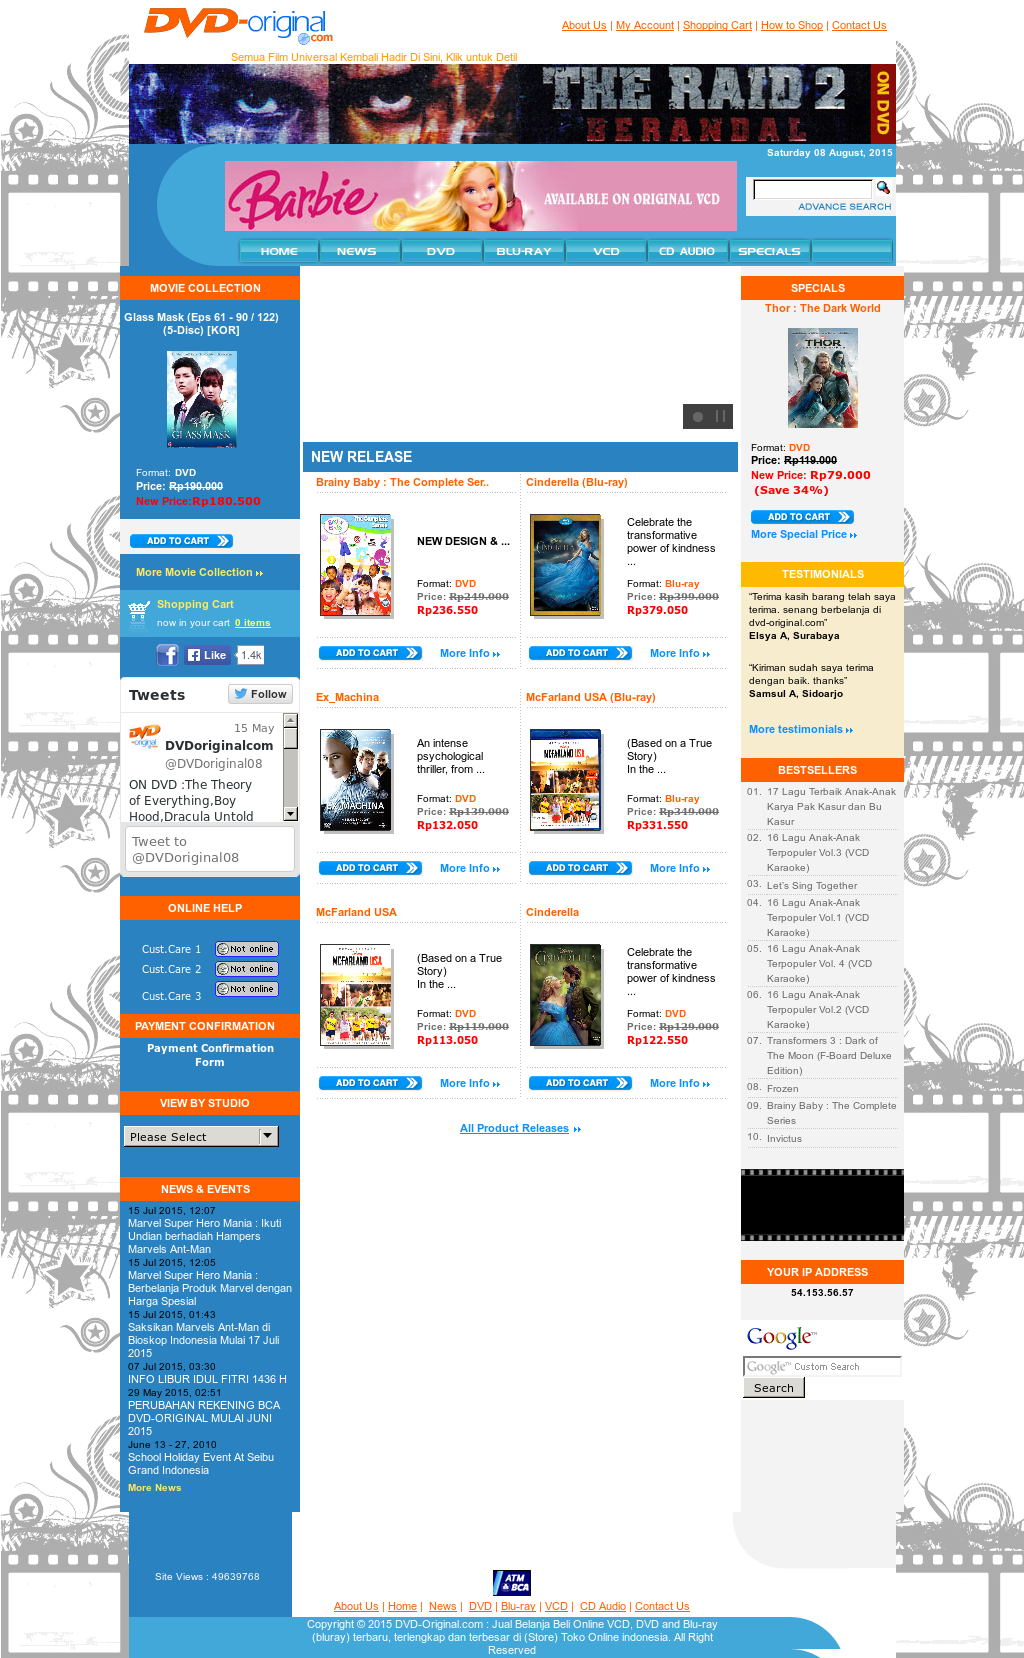 Online Store For Vcd, Dvd, & Blu-ray Original In Indonesia